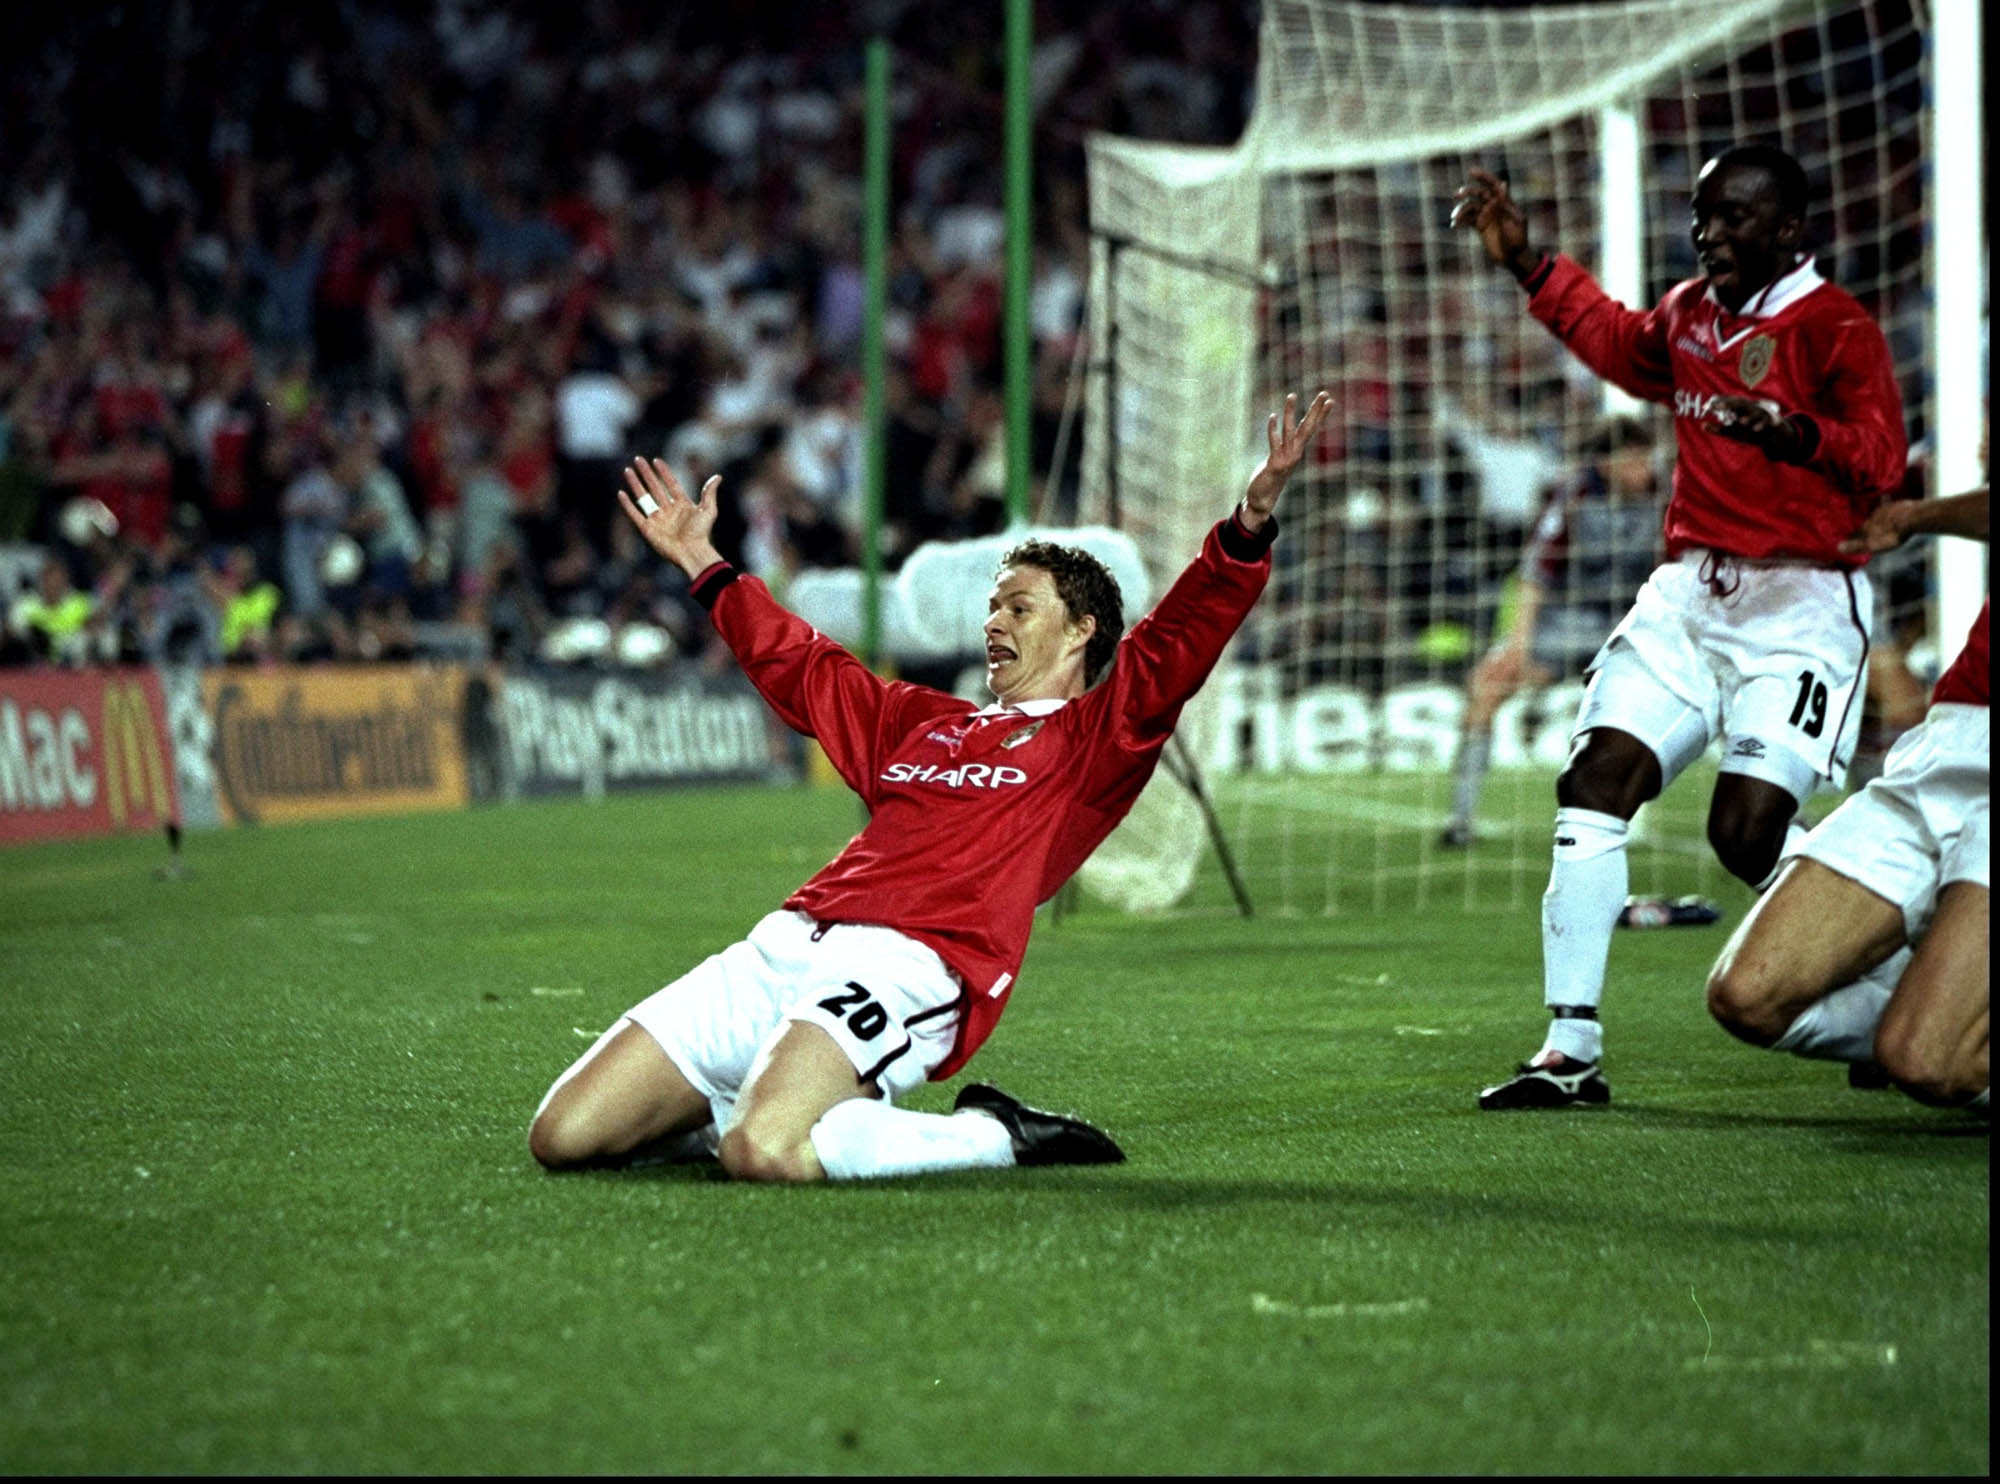 Ole Gunnar Solskjaer celebrates scoring the second goal for Manchester United during the European Champions League Final against Bayern Munich in the Nou Camp Stadium, Barcelona, Spain. Manchester United won 2 - 1 with both United goals scored during injury time, to secure the treble of League, FA Cup and European Cup.